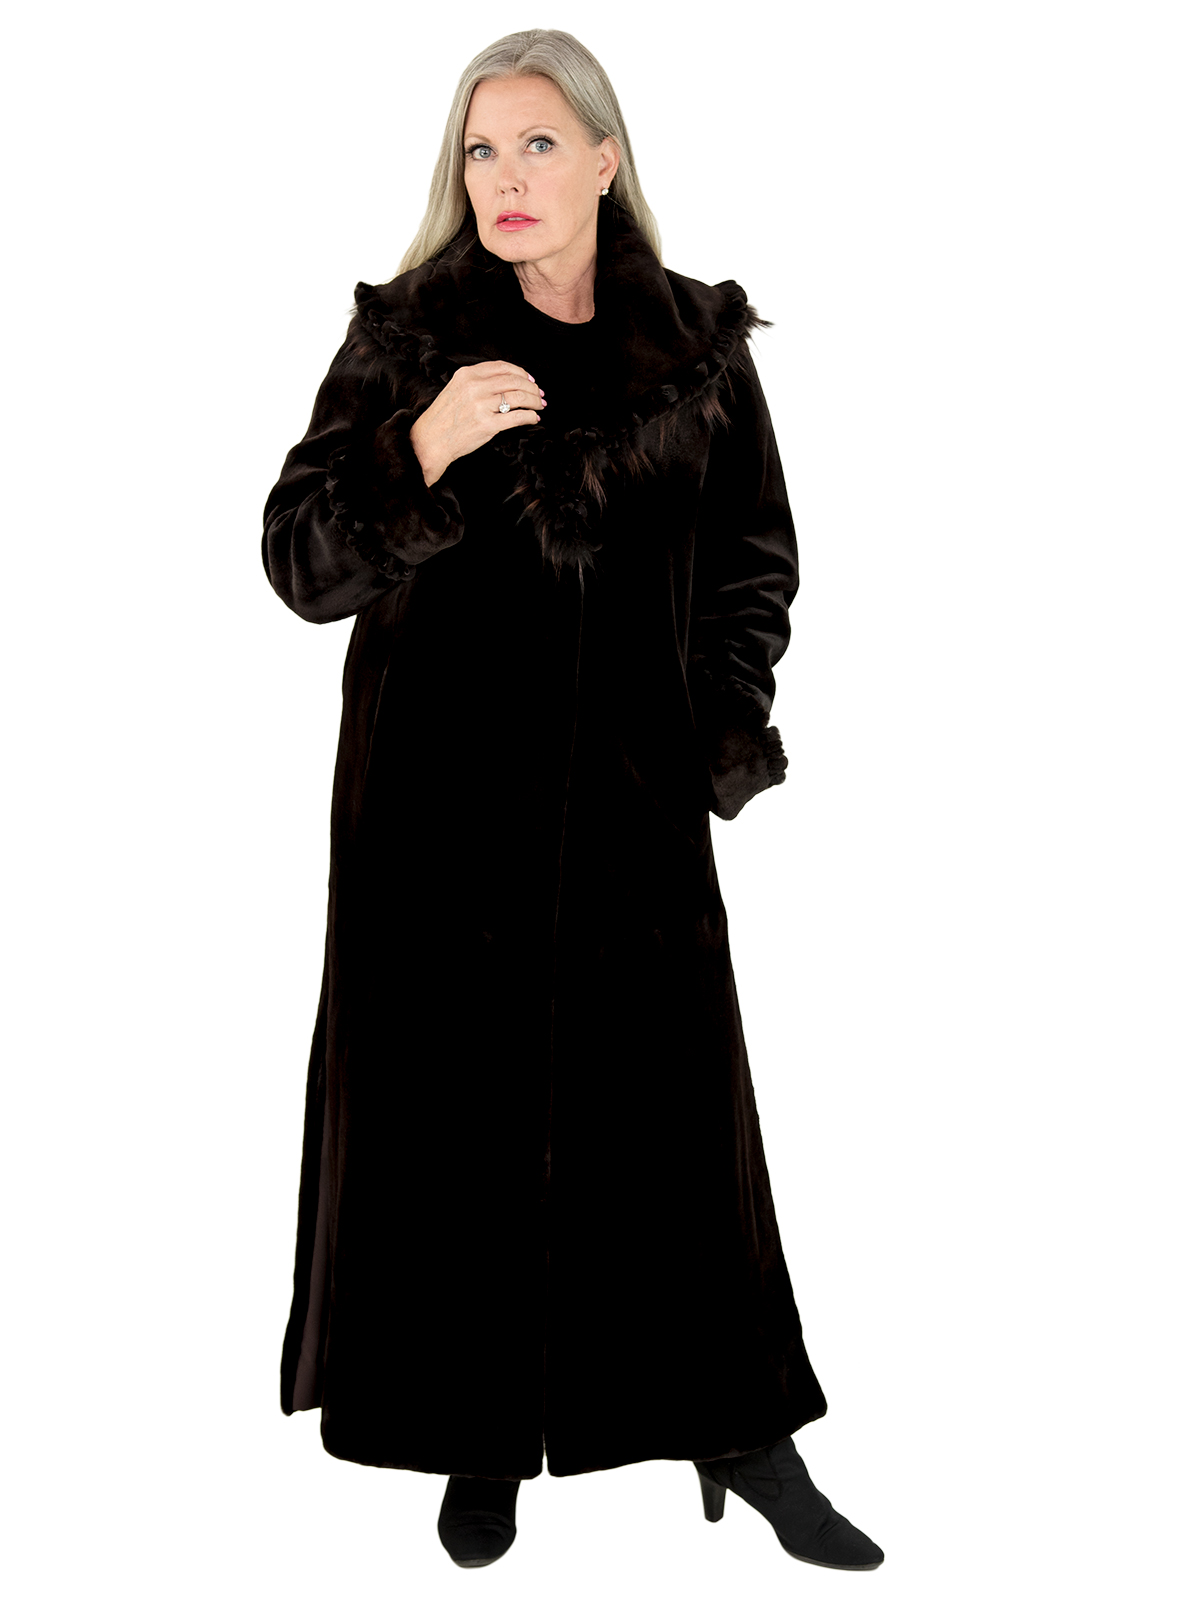 Woman's Deep Brown Sheared Mink Fur Coat with Fringe Details